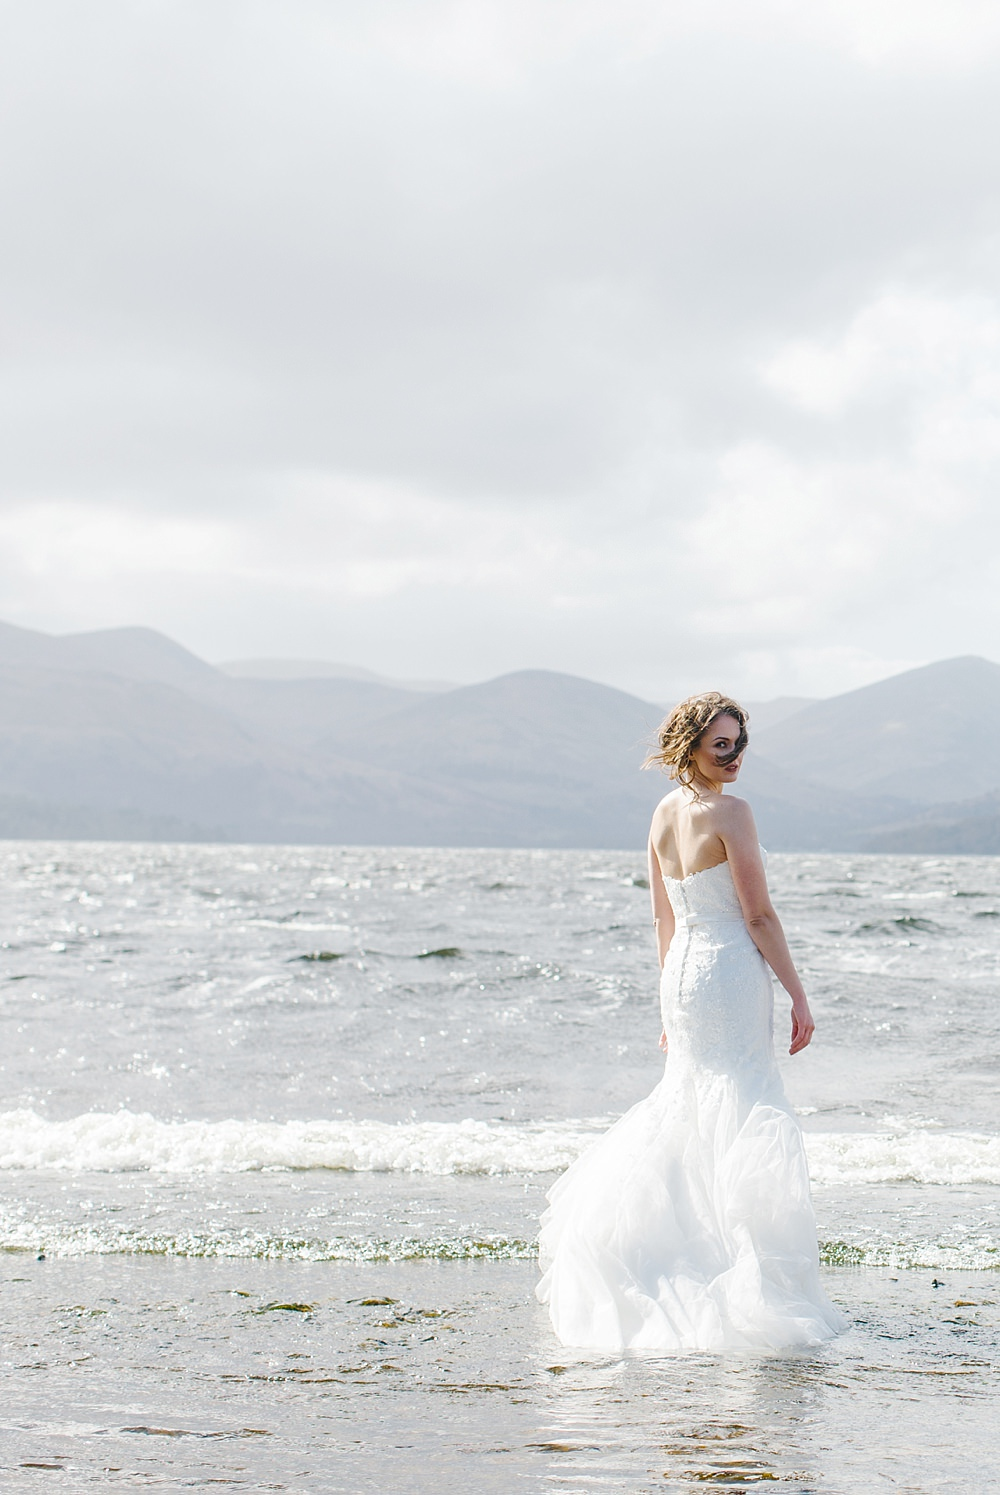 Fine Art Wedding Photographers Glasgow,Laura Gray Hair Beauty Bridal,The Gibsons,creative wedding photographers glasgow,loch lomond,rock the dress shoot,